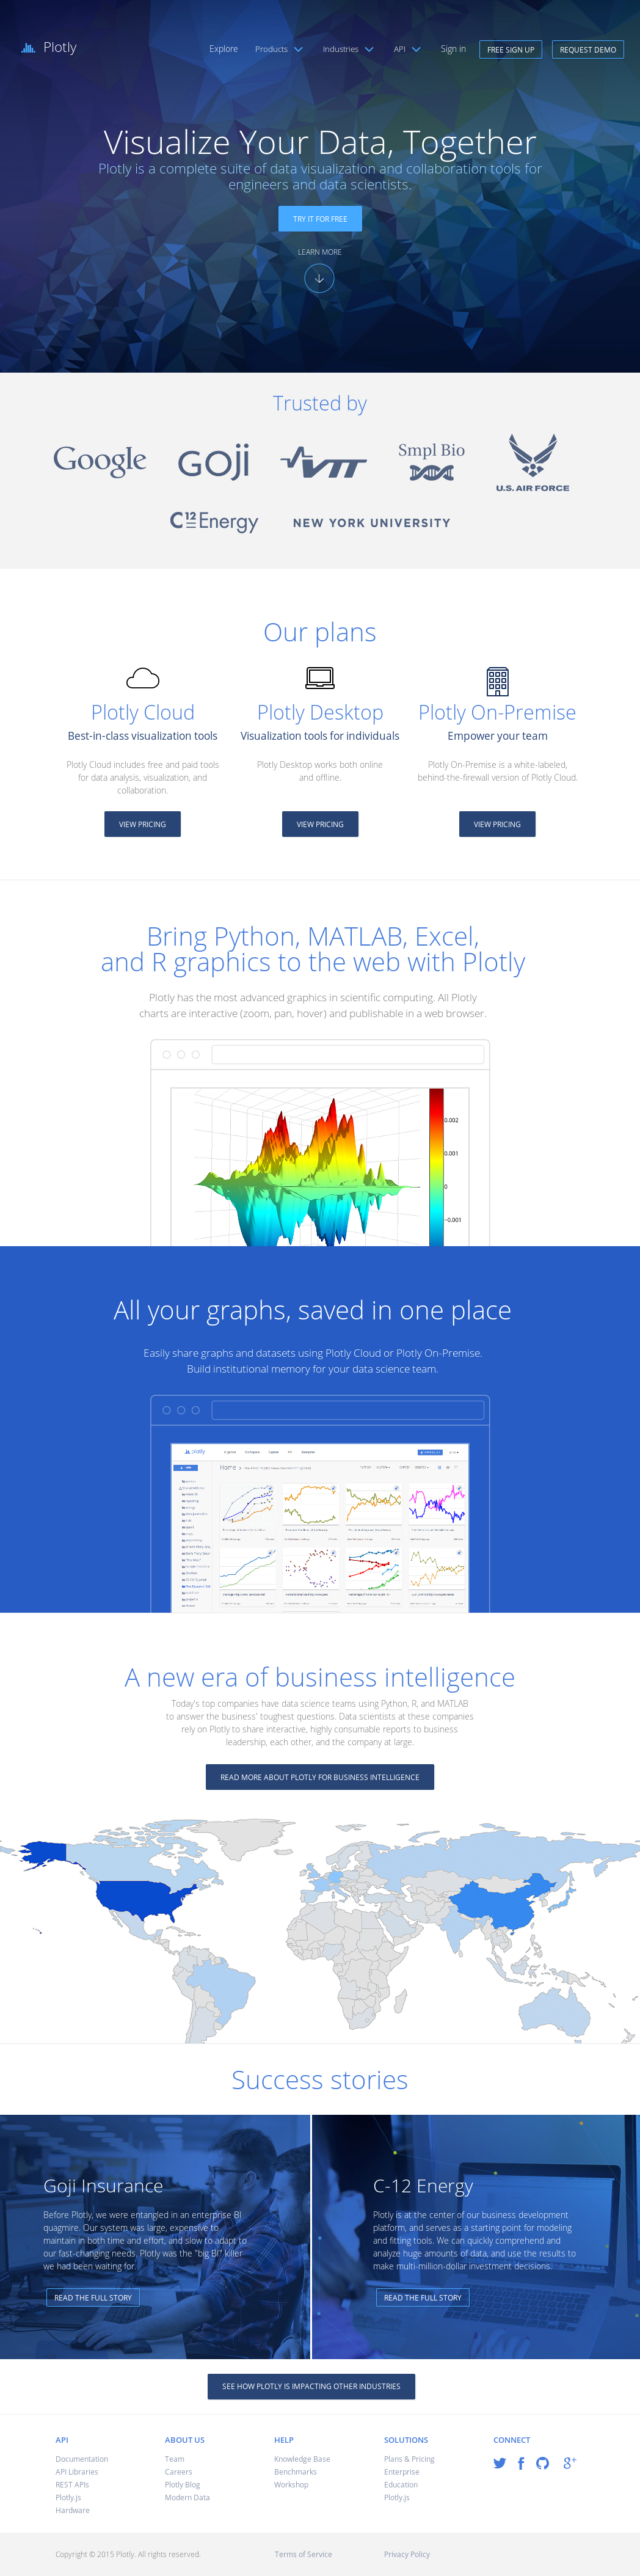 Plotly Competitors, Revenue and Employees - Owler Company